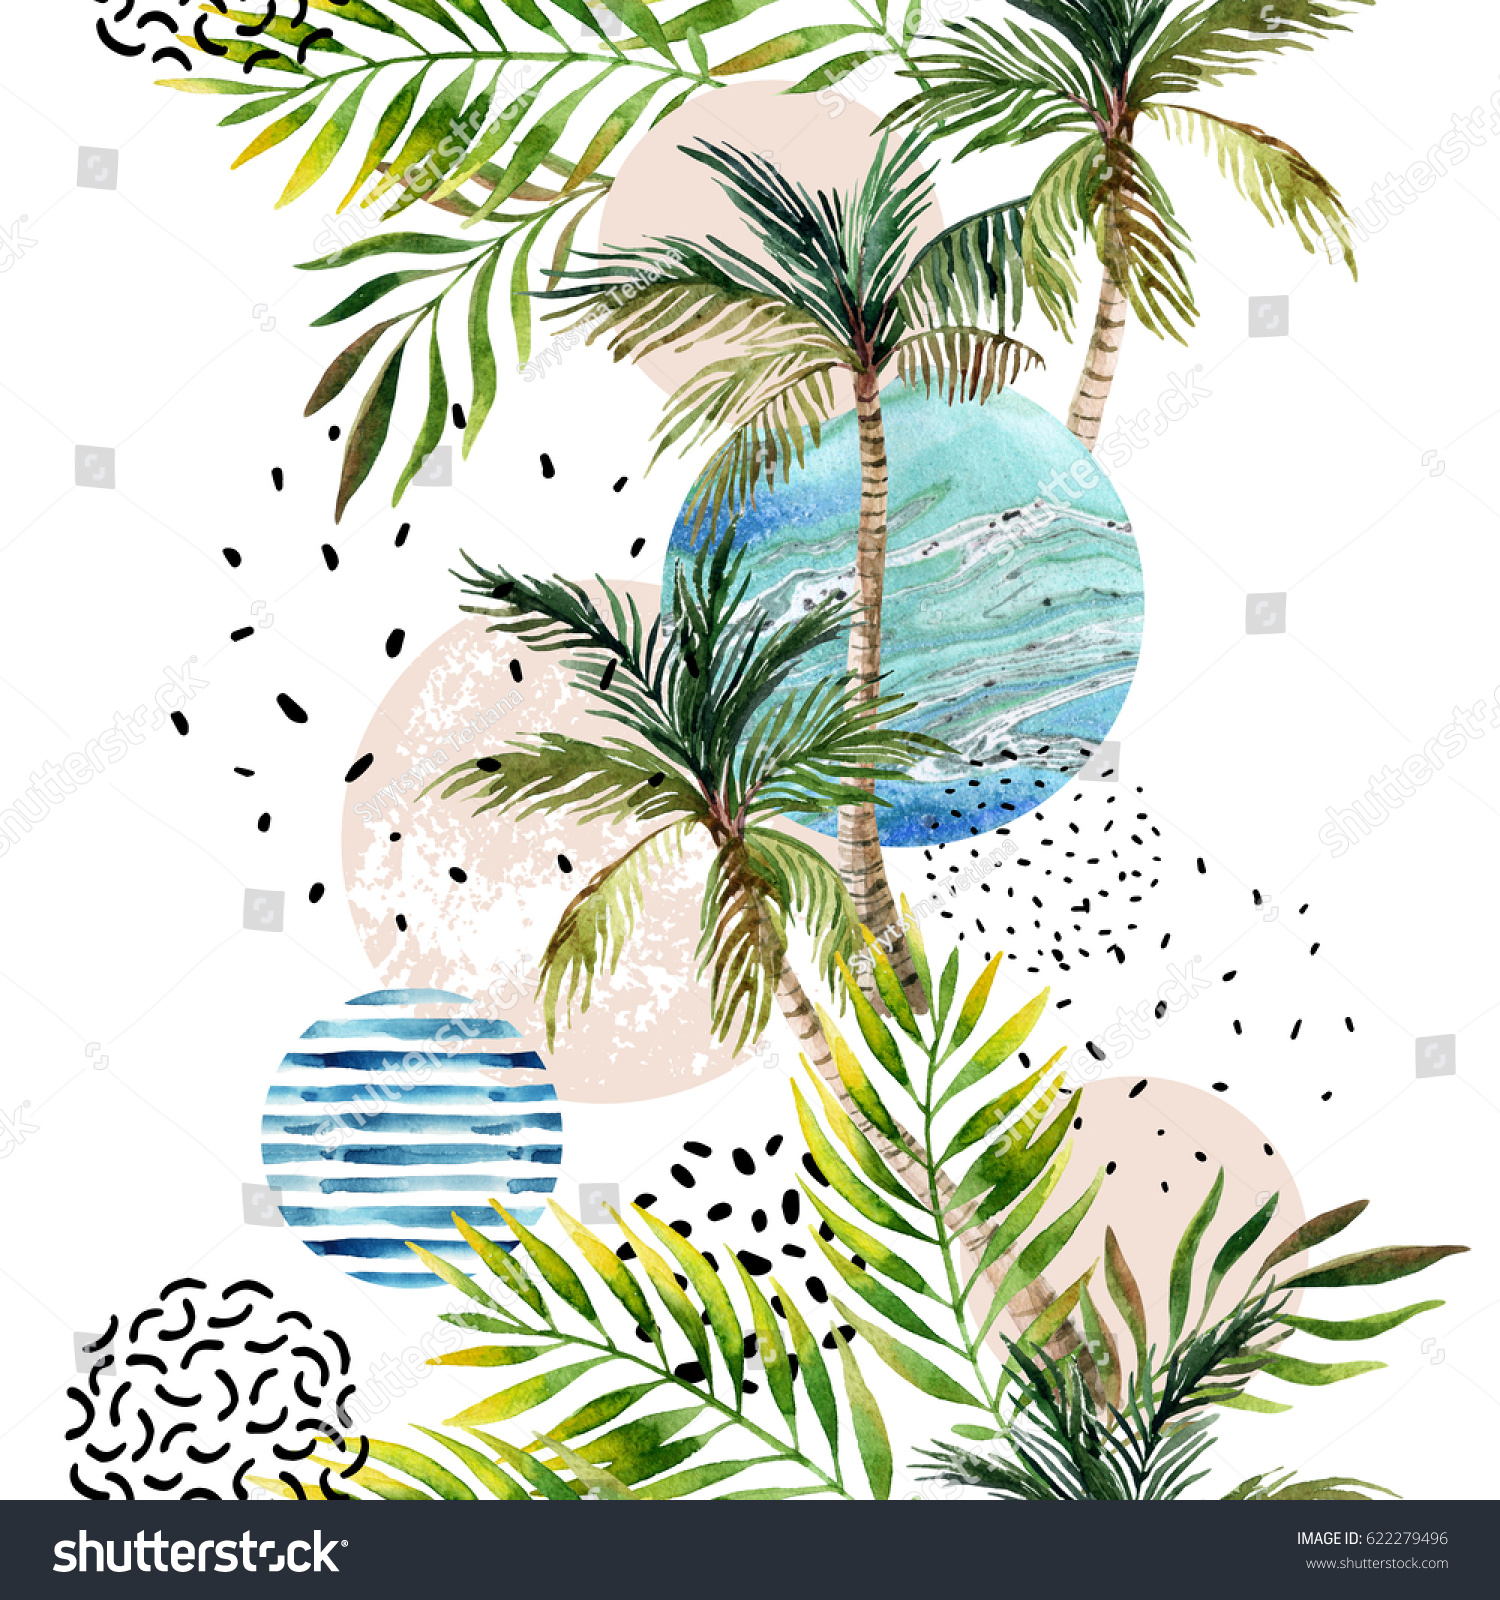 Similar Images, Stock Photos & Vectors of Abstract Summer Geometric ...